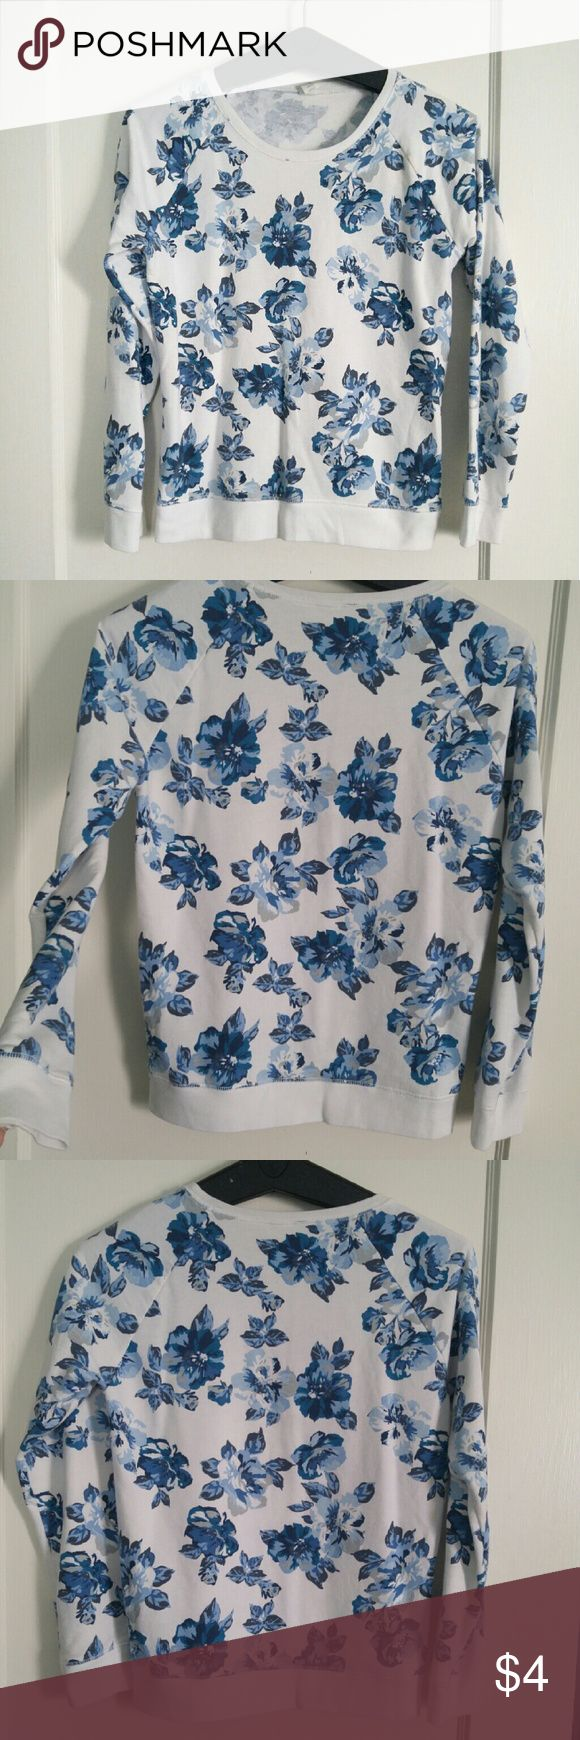 Old Navy long sleeve top. Beautiful blue and white floral sweatshirt. This is a girls XL so it fits like a women's small/ medium. Great lightweight terrycloth material to throw on after a workout, to hangout in, or for bedtime. In great shape and versatile. Comfortable and cute. Old Navy Tops Sweatshirts & Hoodies